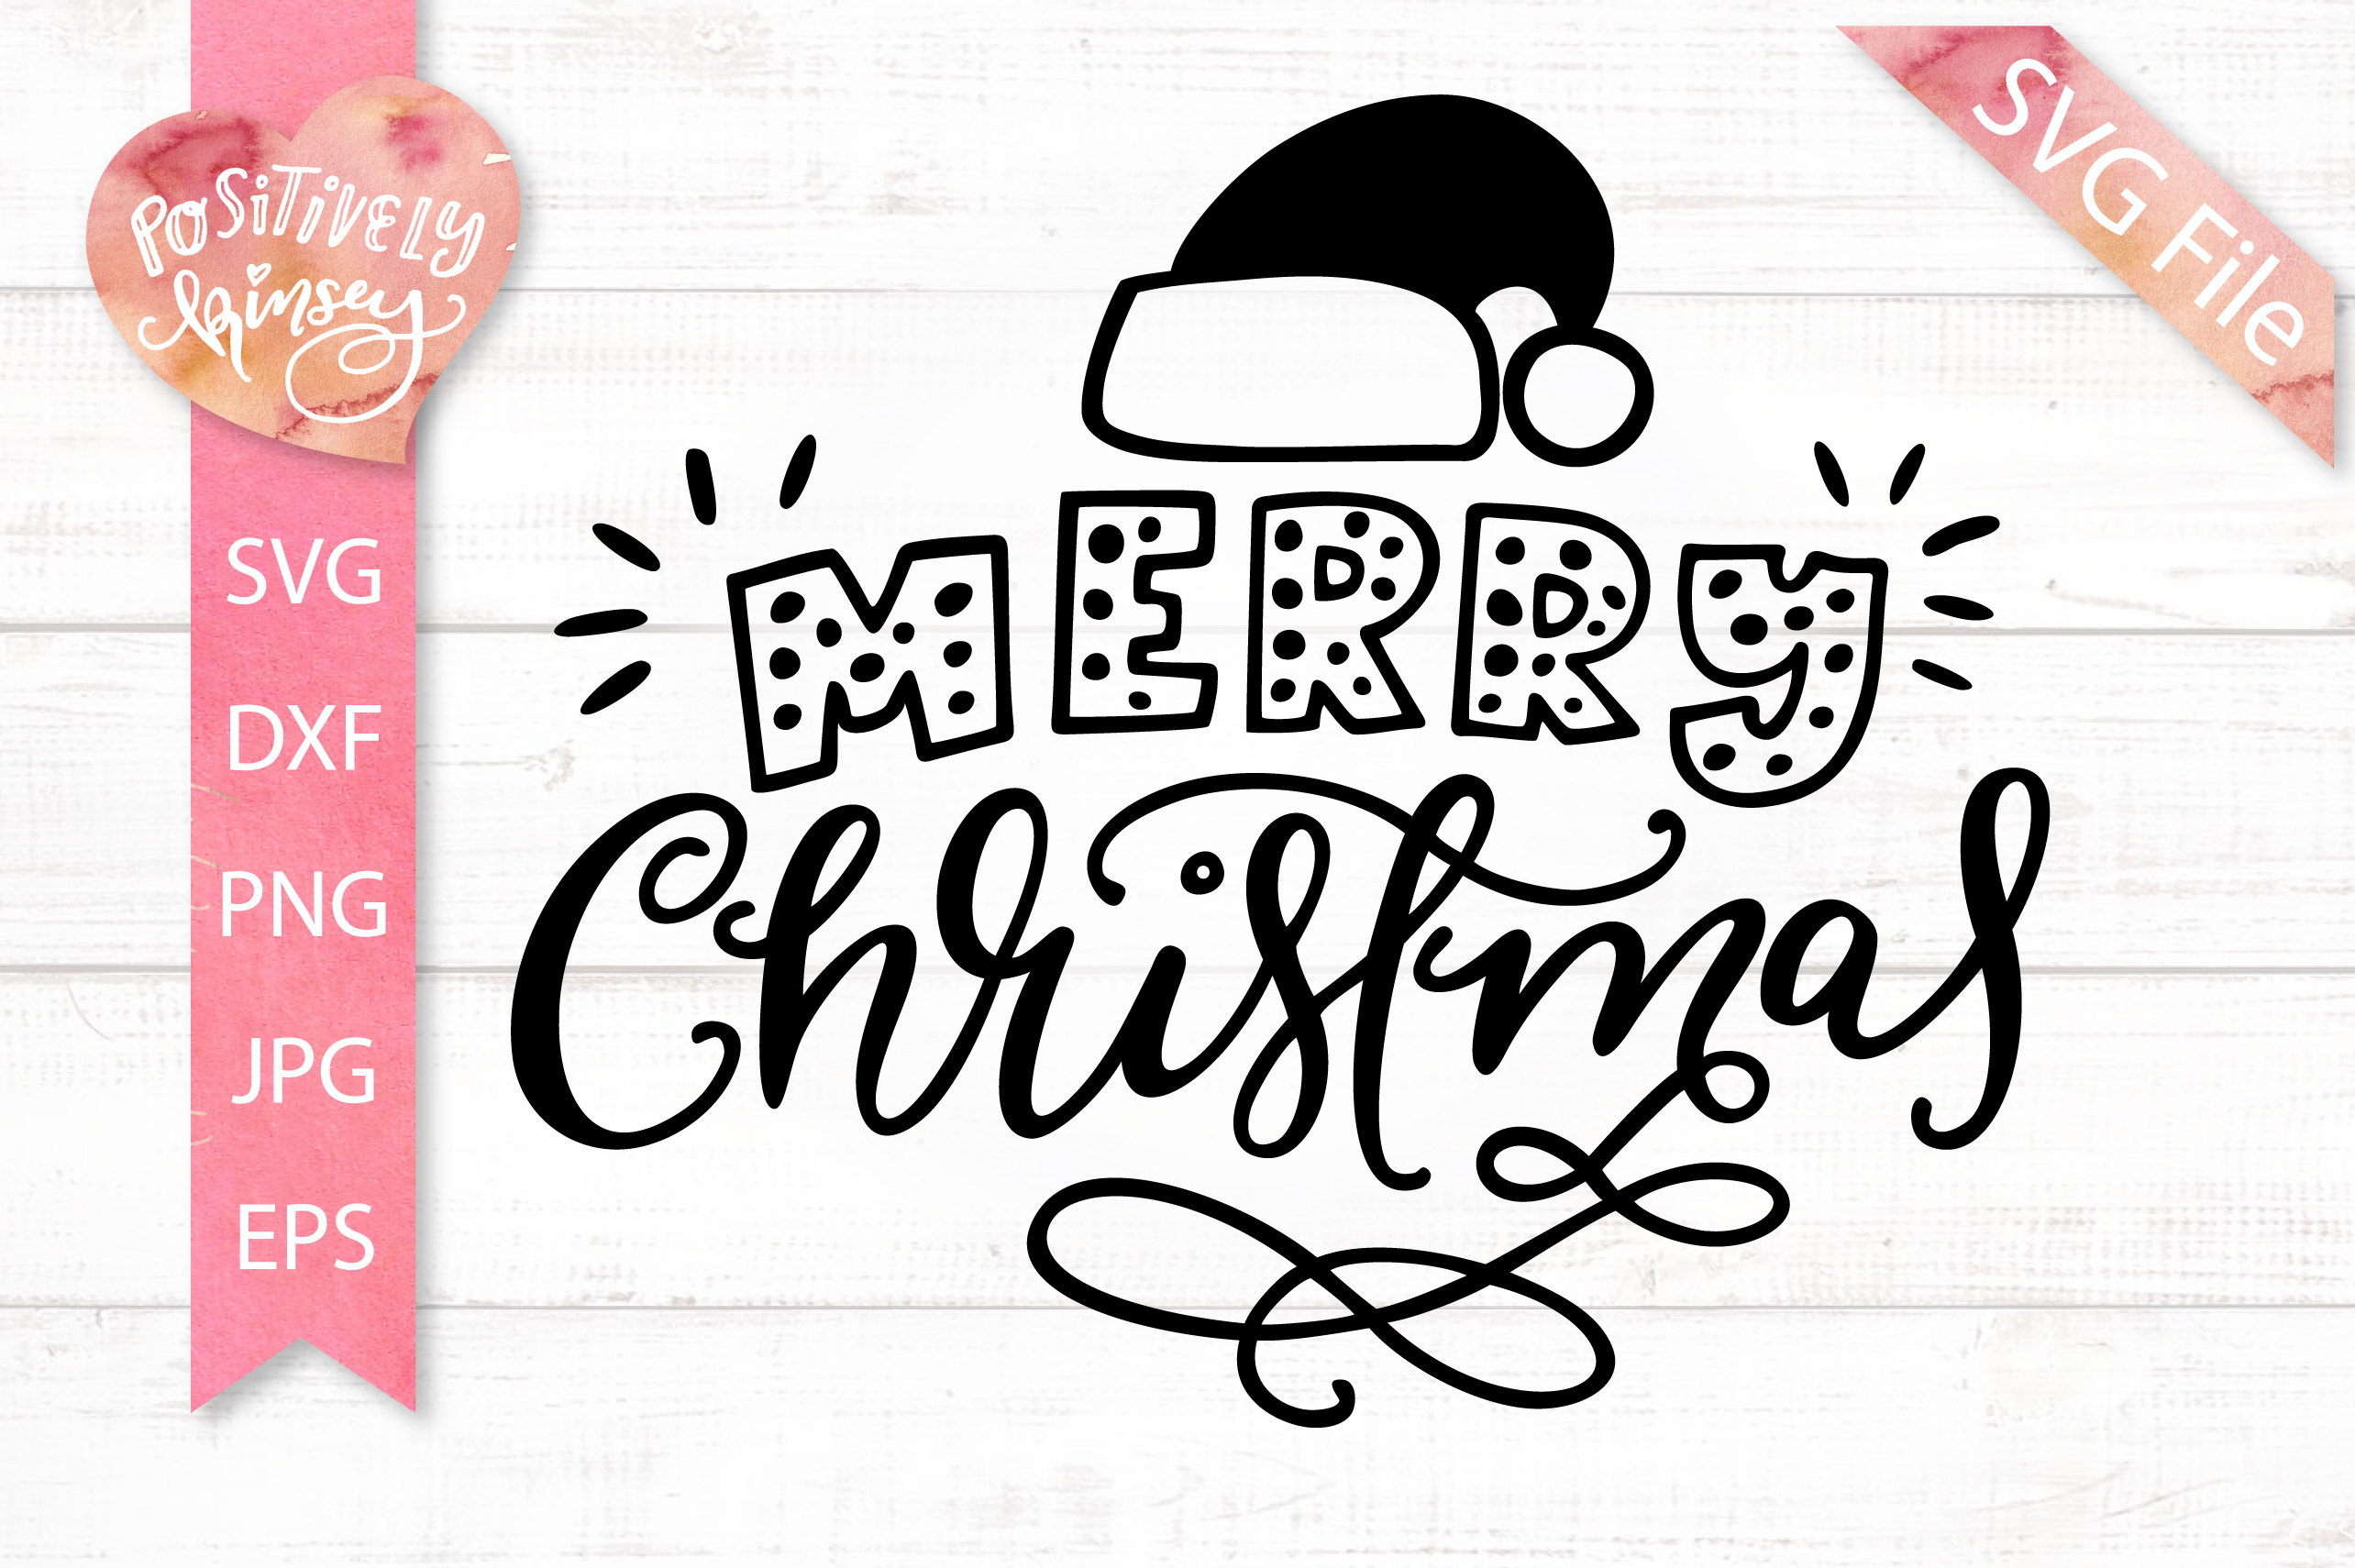 Merry Christmas SVG DXF PNG EPS Christmas Ornament Svg FIle example image 1